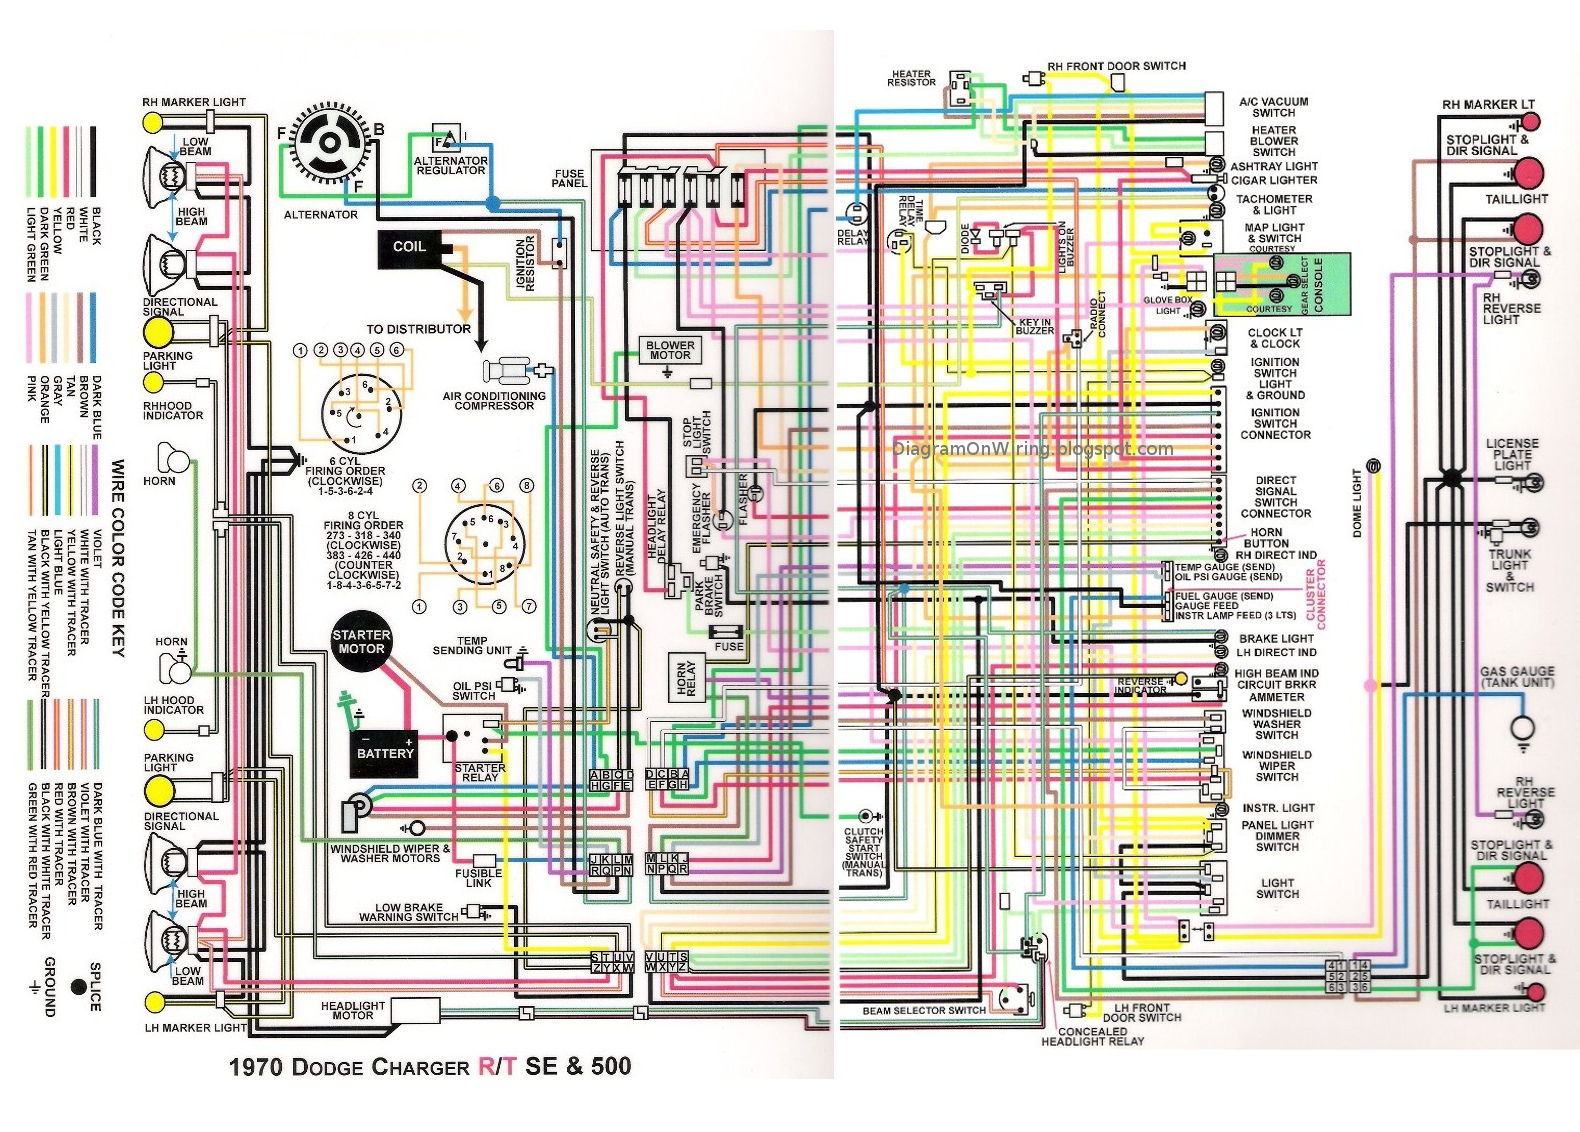 hight resolution of 1966 mustang color wiring diagram wiring diagram1966 mustang color wiring diagram wiring library1970 dodge charger rt